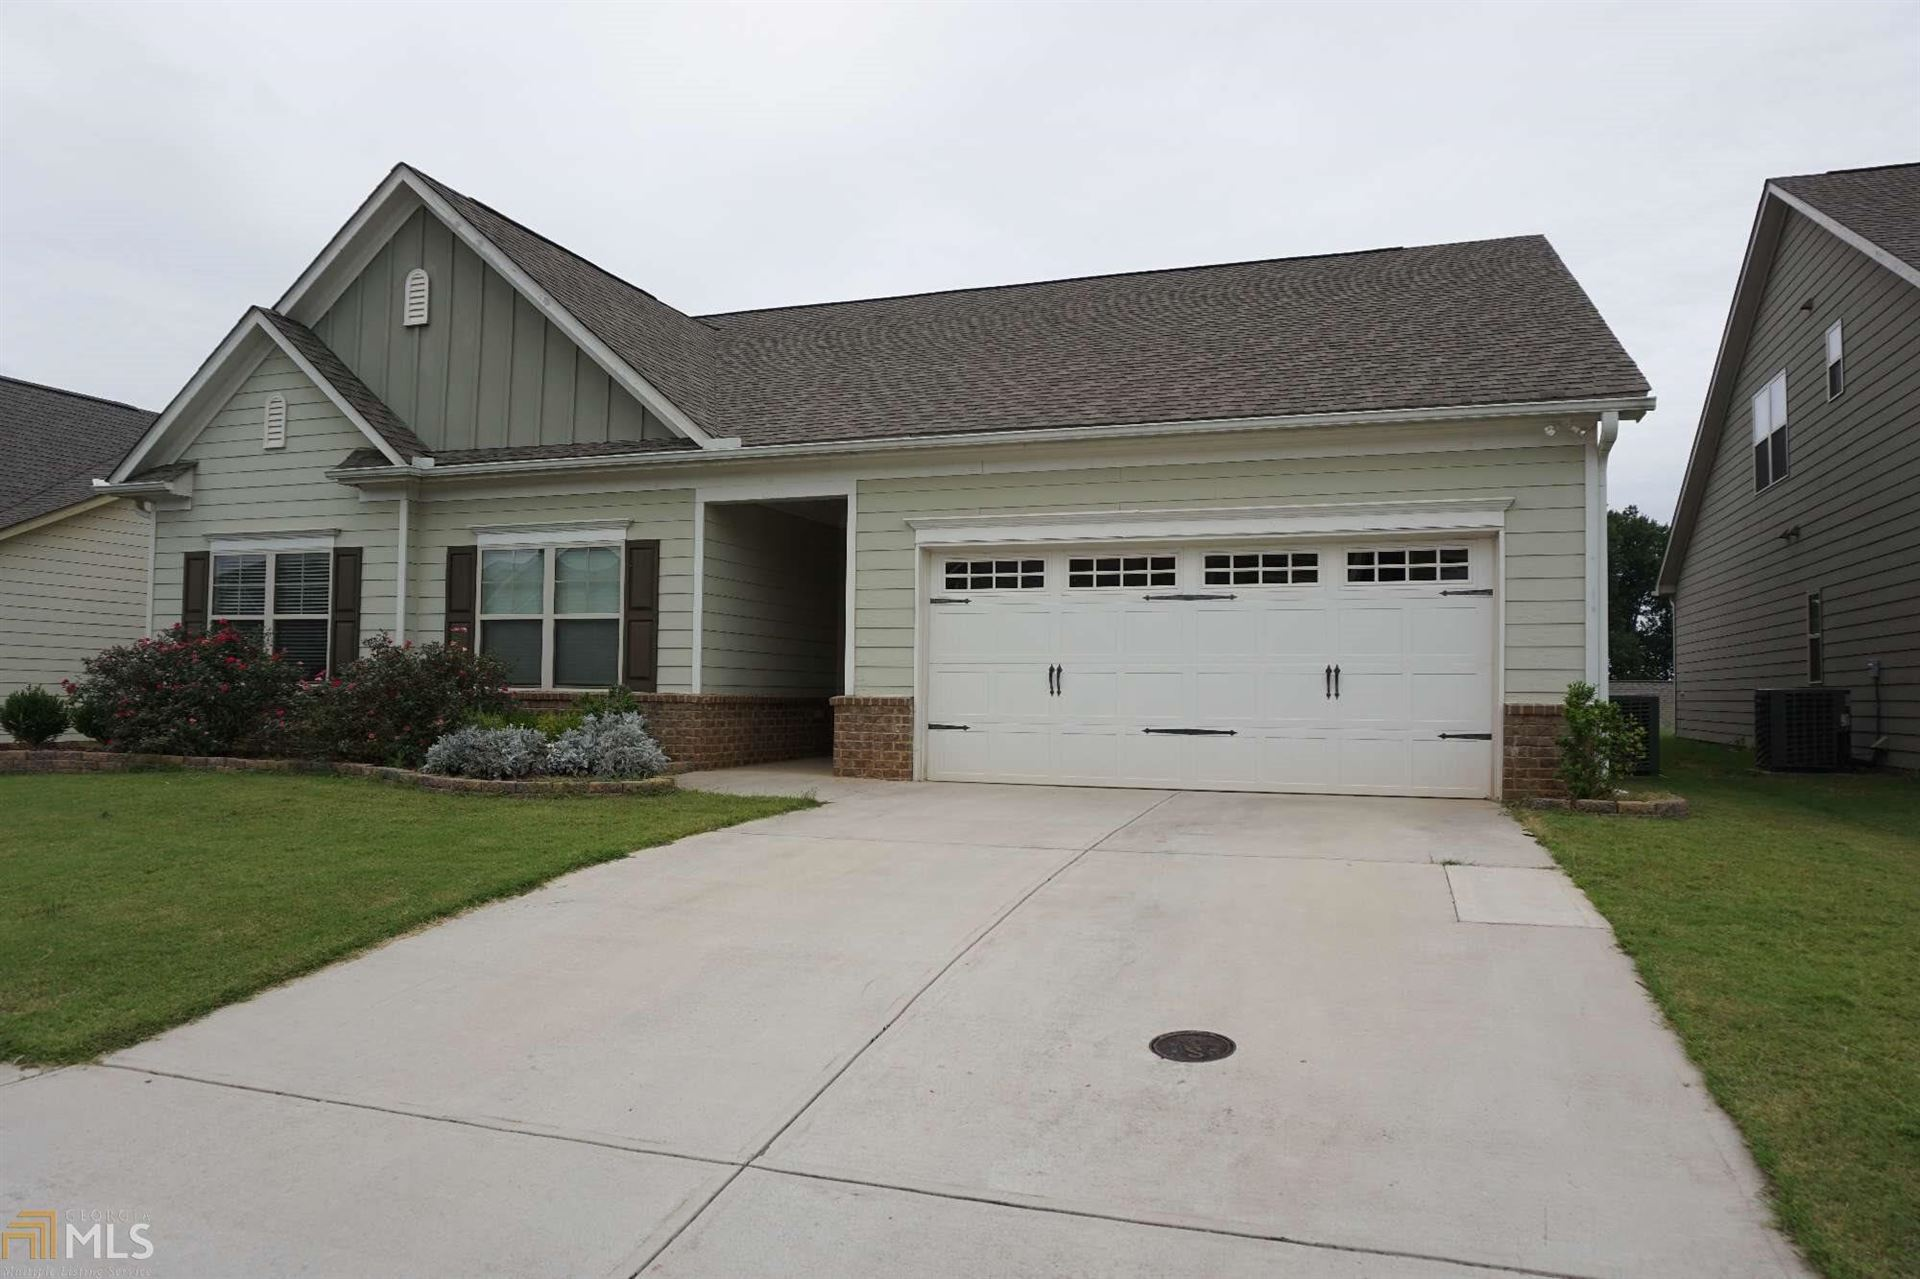 4670 Summerview Dr, Gainesville, GA 30504 - MLS#: 8859916